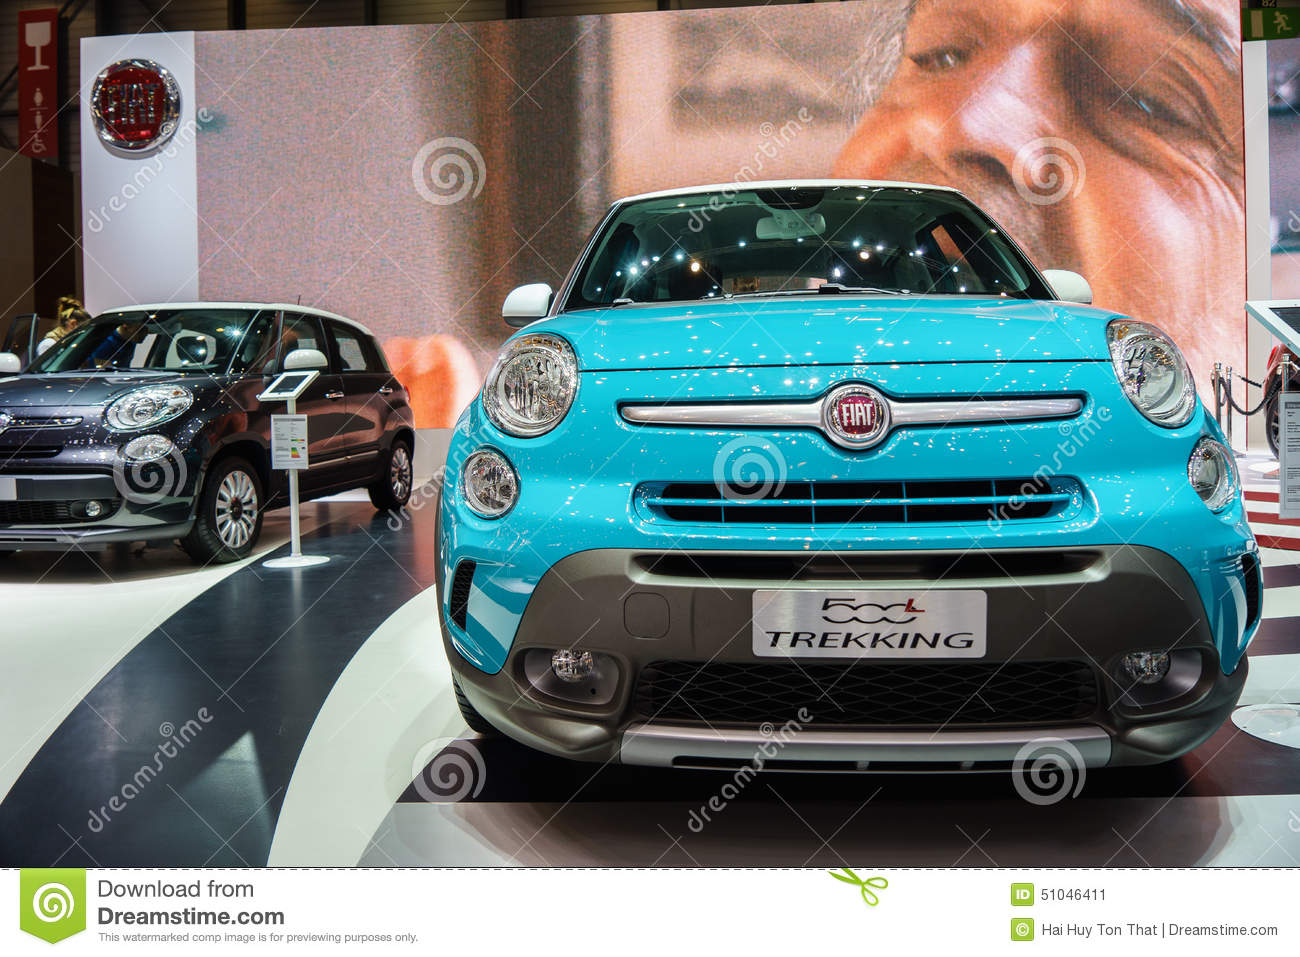 2014-2018 Five Year Plan for Fiat Group and Associated Companies